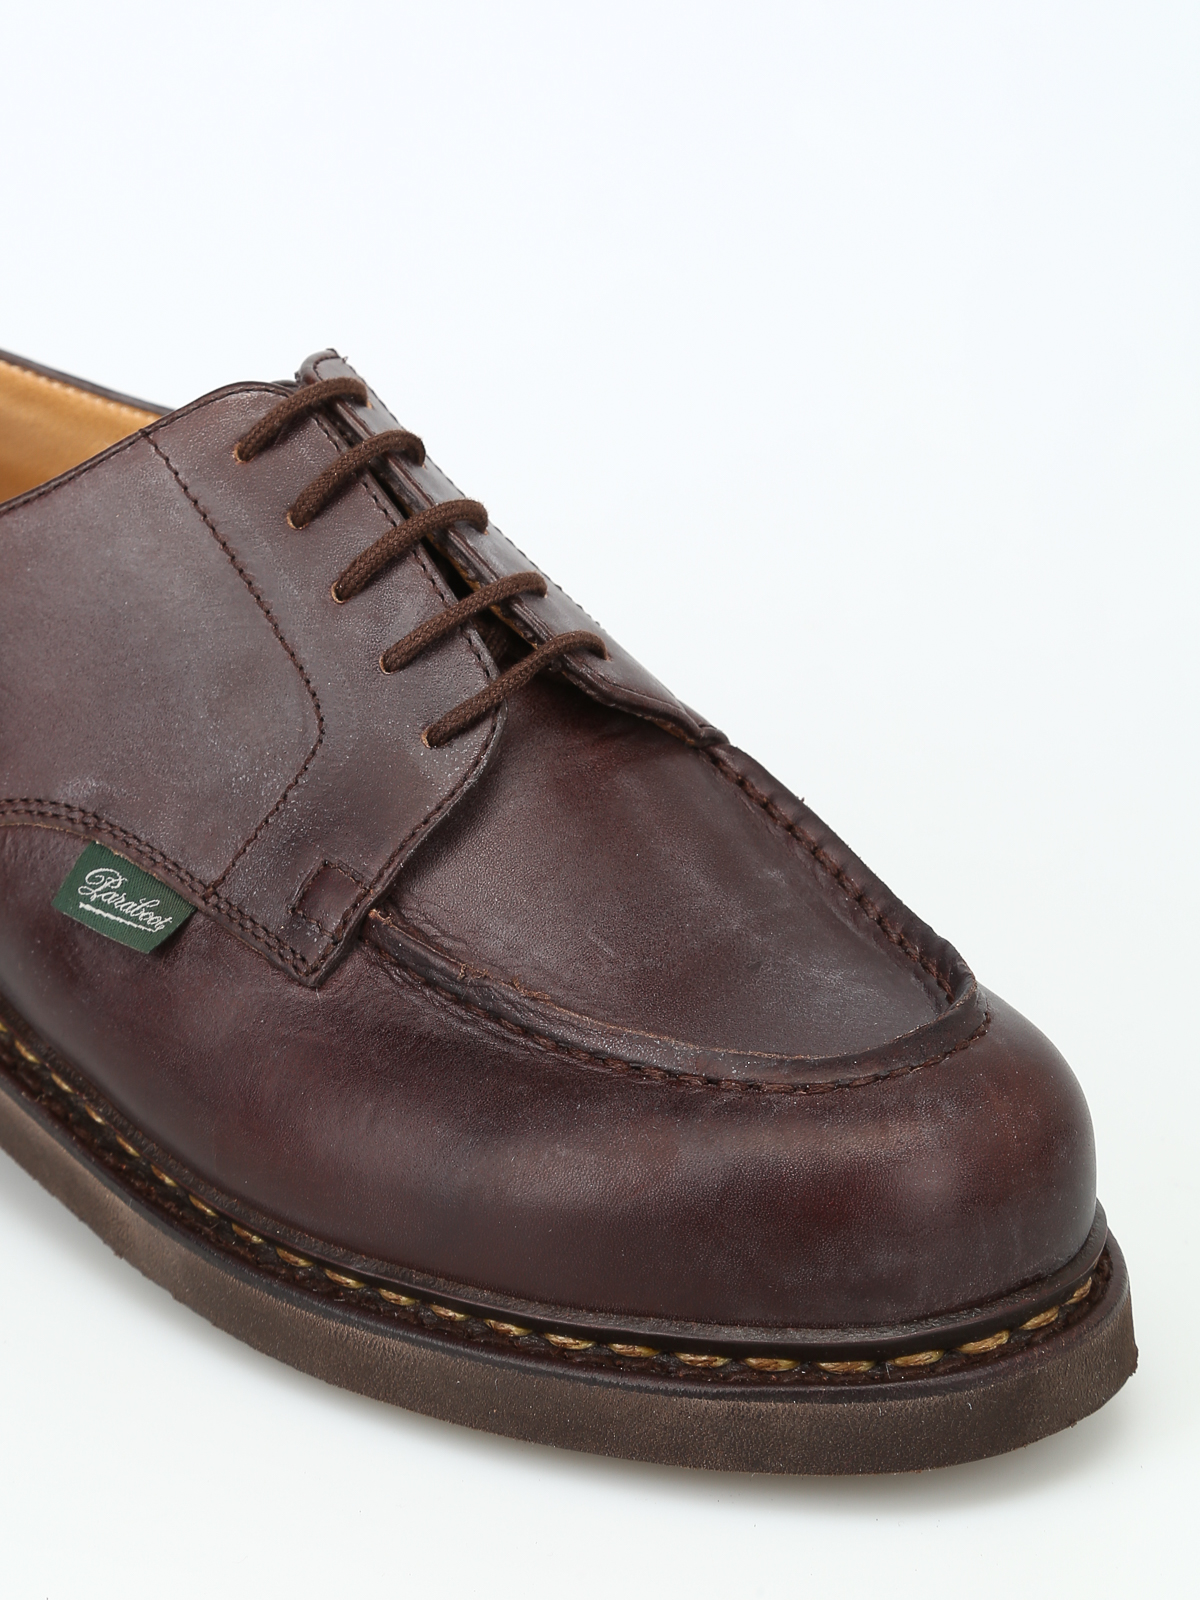 Paraboot - Chambord vintage leather lace-up shoes - lace ...